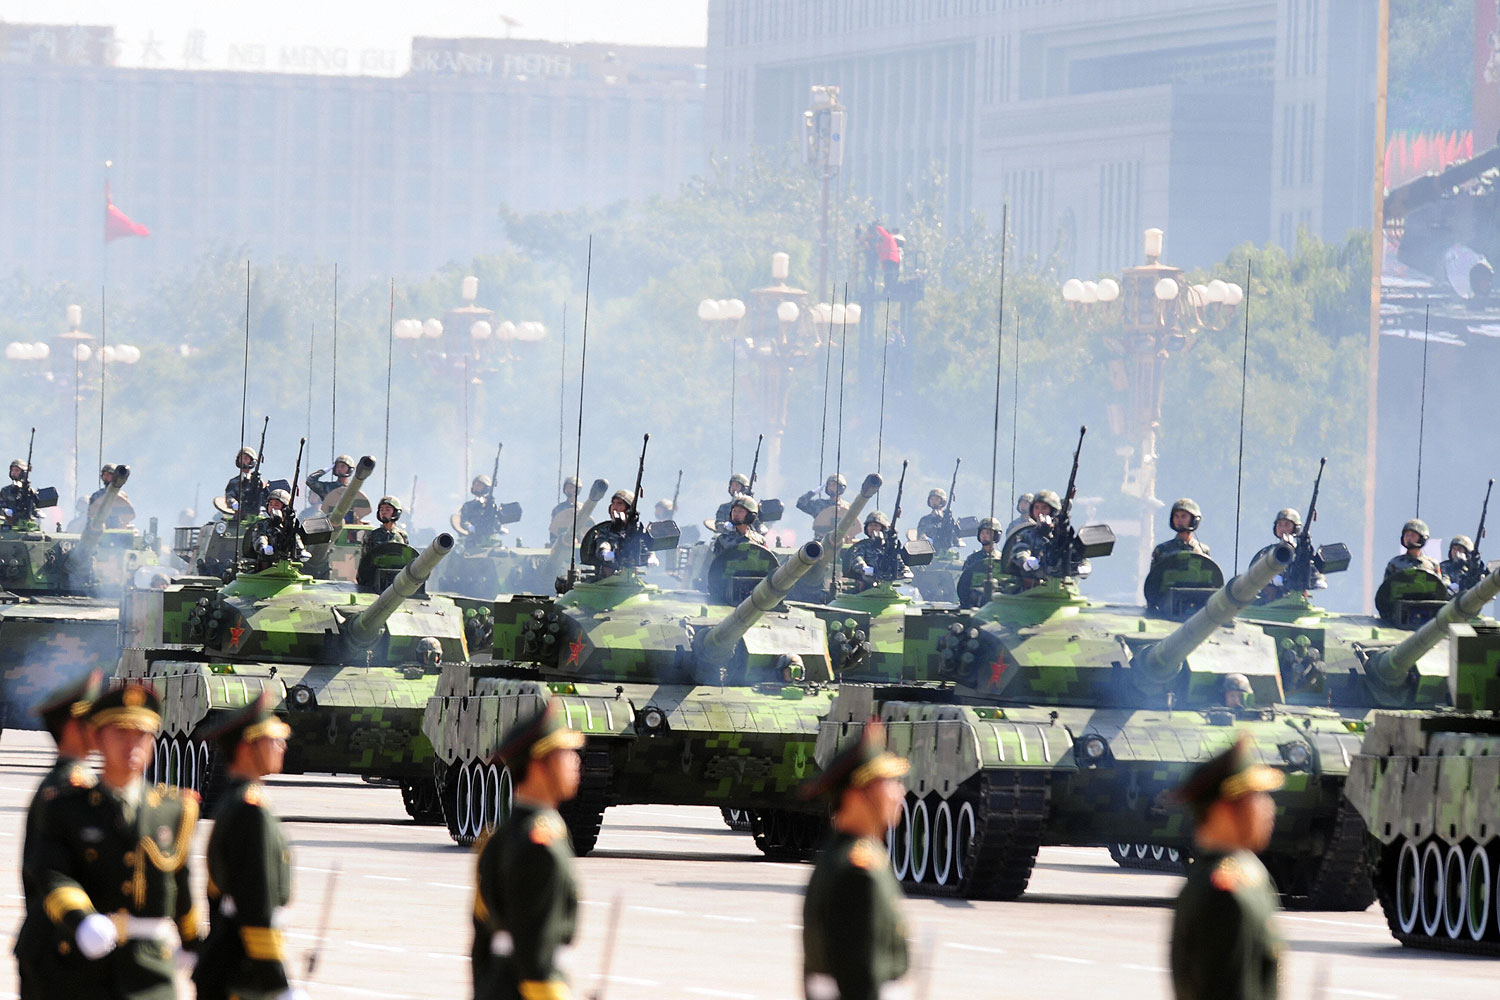 Chinese People's Liberation Army (PLA) tanks rumble past Tiananmen Square during the National Day parade in Beijing